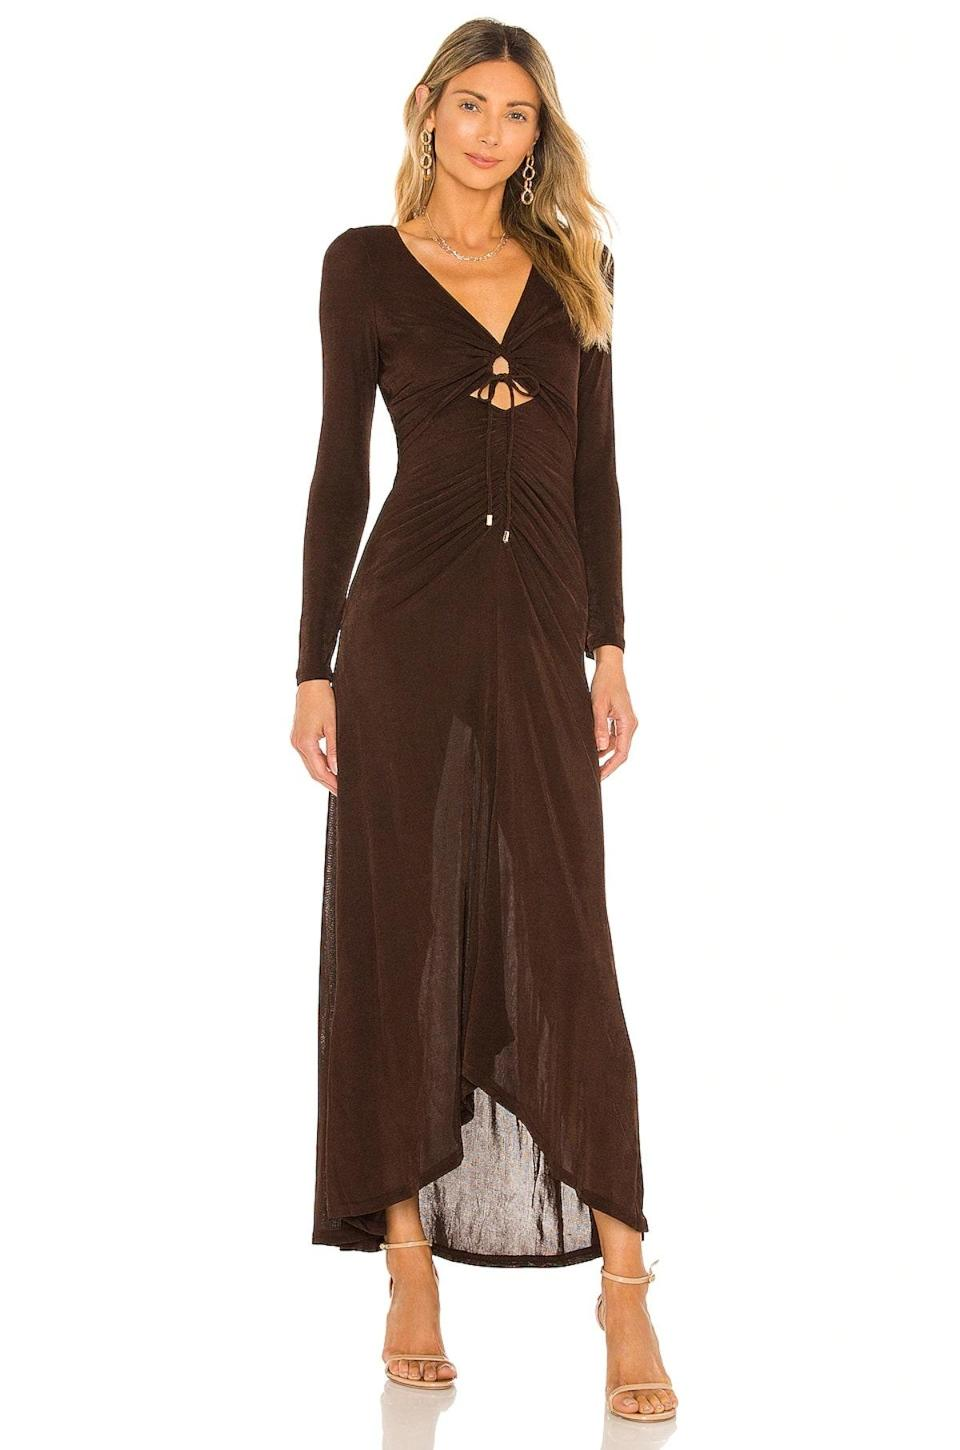 """A long-sleeve dress, like this style from Significant Other, will be the one you reach for over and over again. The <a href=""""https://www.glamour.com/gallery/brown-neutral-trend?mbid=synd_yahoo_rss"""" rel=""""nofollow noopener"""" target=""""_blank"""" data-ylk=""""slk:chocolate brown"""" class=""""link rapid-noclick-resp"""">chocolate brown</a> hue—and peekaboo detail—keep things on-trend for 2021. $200, Revolve. <a href=""""https://www.revolve.com/significant-other-neave-dress/dp/SIGR-WD39/"""" rel=""""nofollow noopener"""" target=""""_blank"""" data-ylk=""""slk:Get it now!"""" class=""""link rapid-noclick-resp"""">Get it now!</a>"""